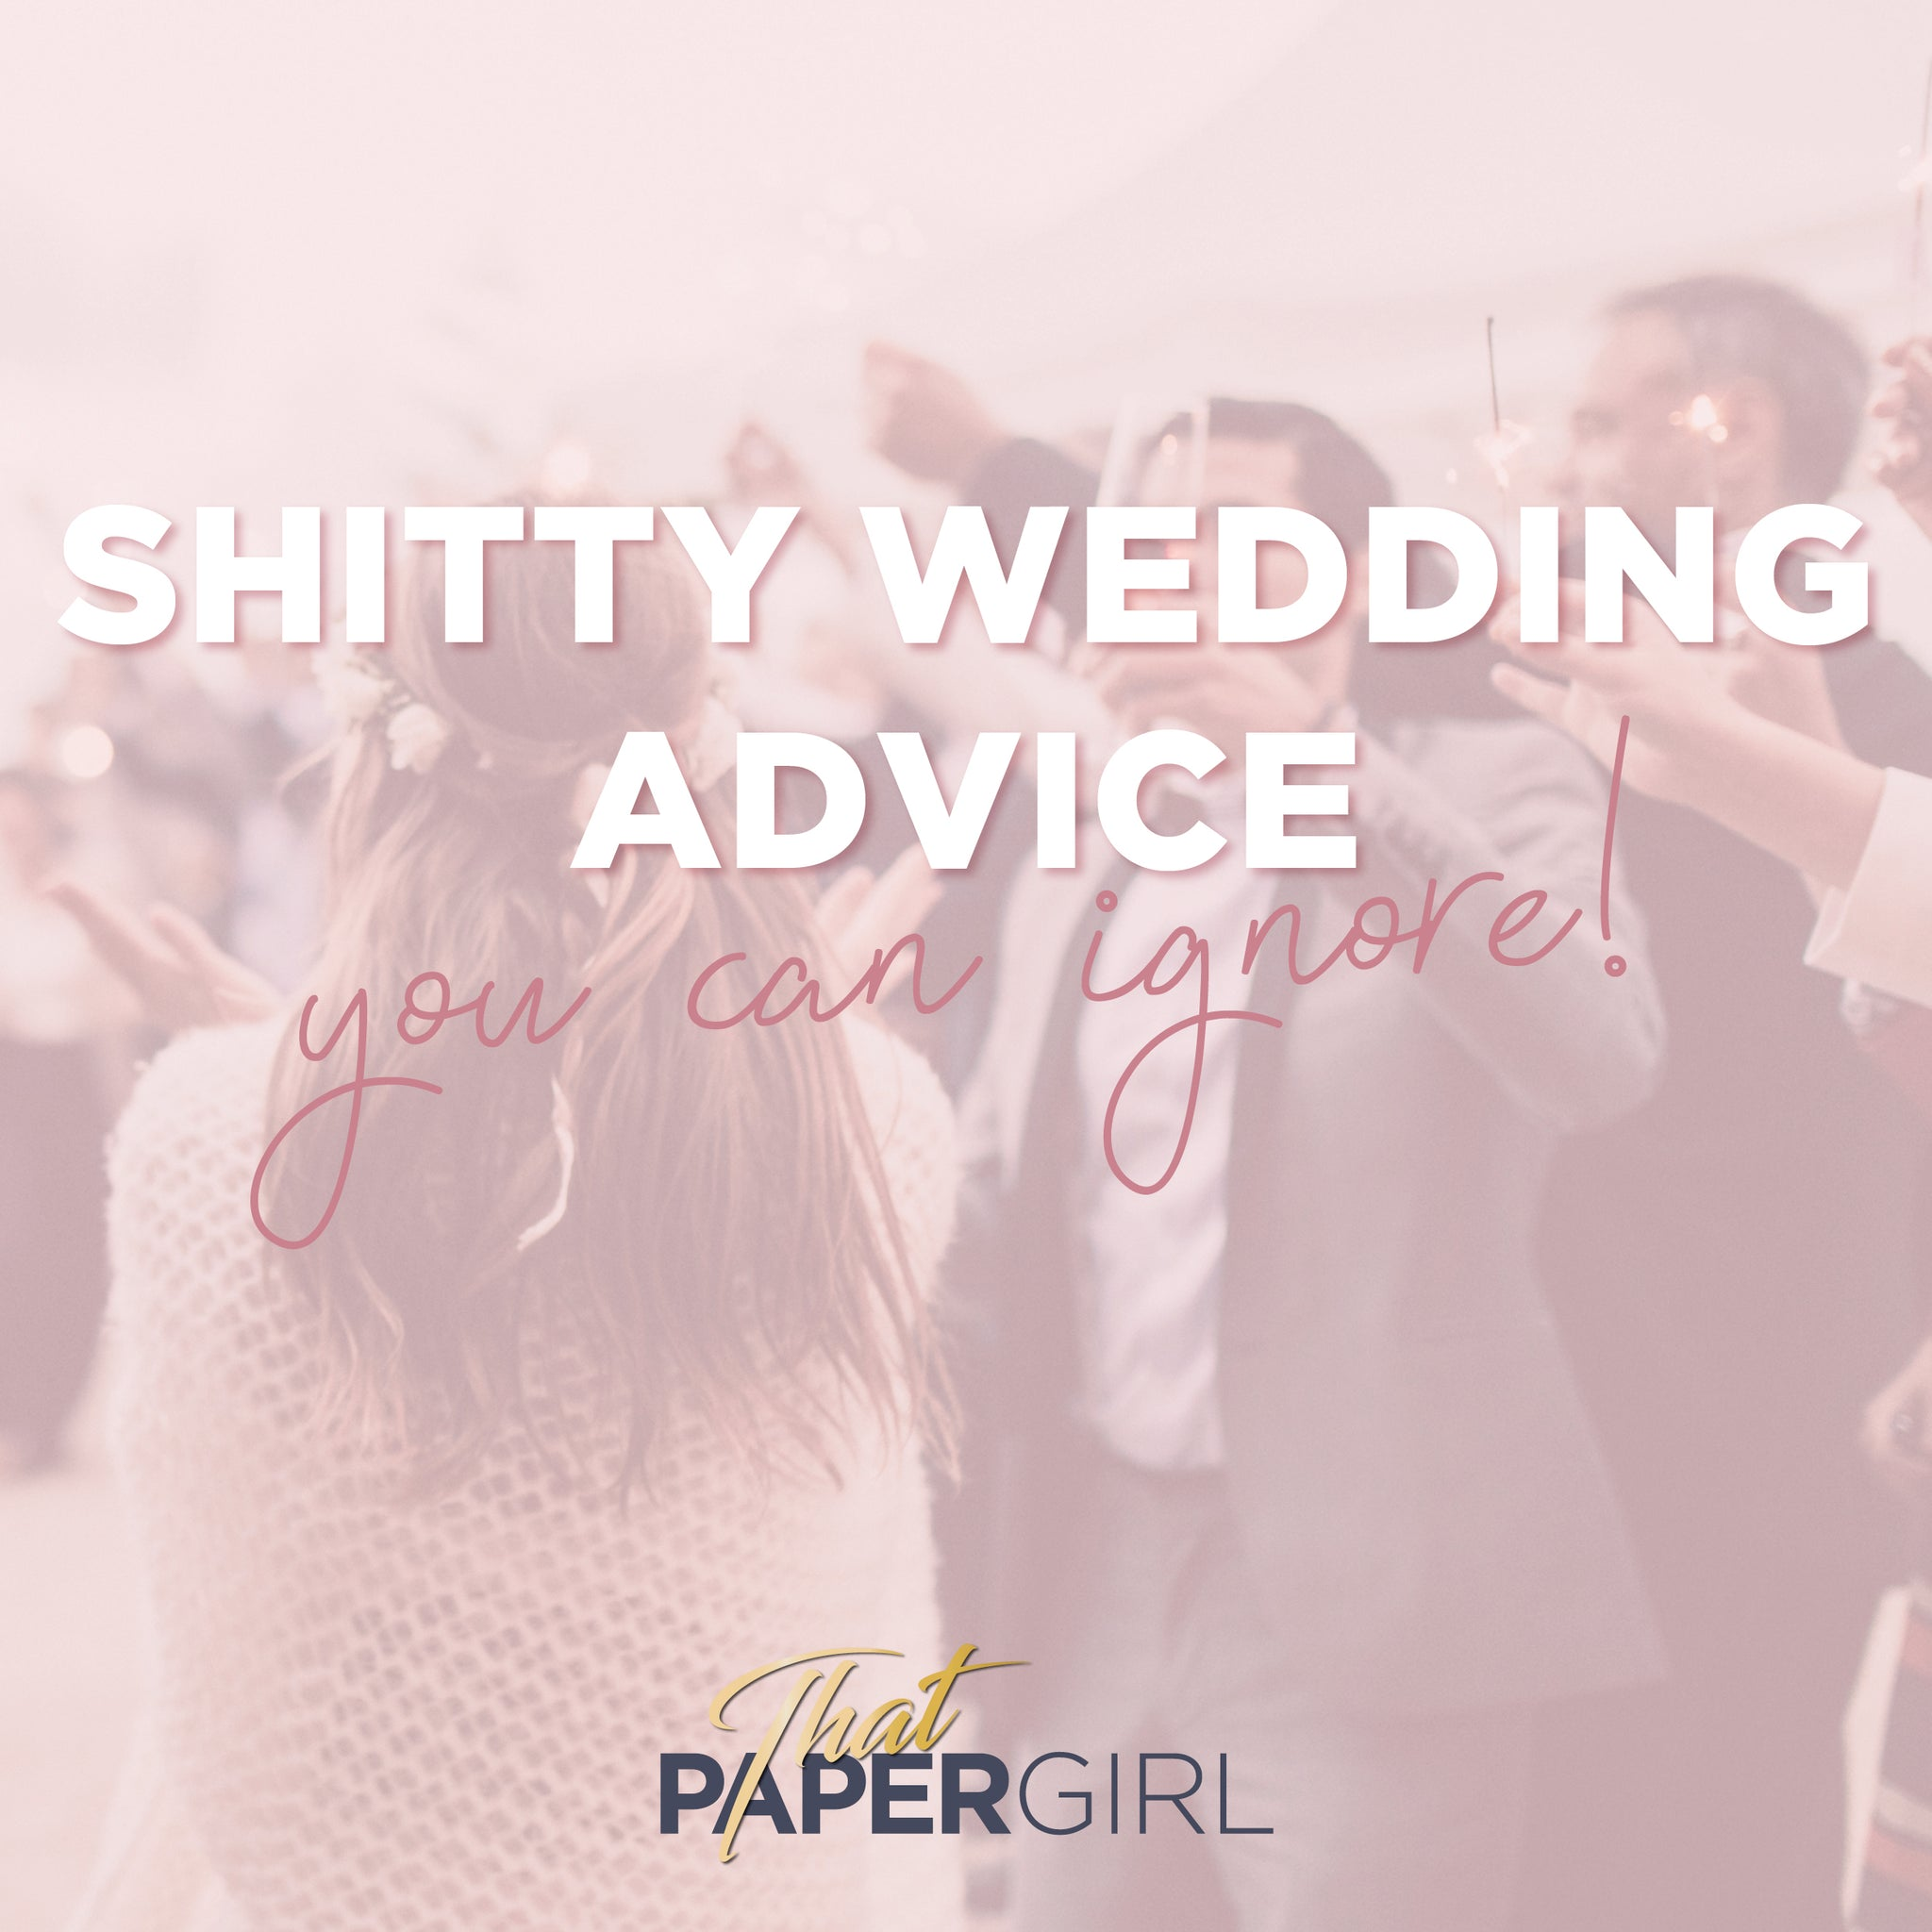 Shitty Wedding Advice You Can Ignore